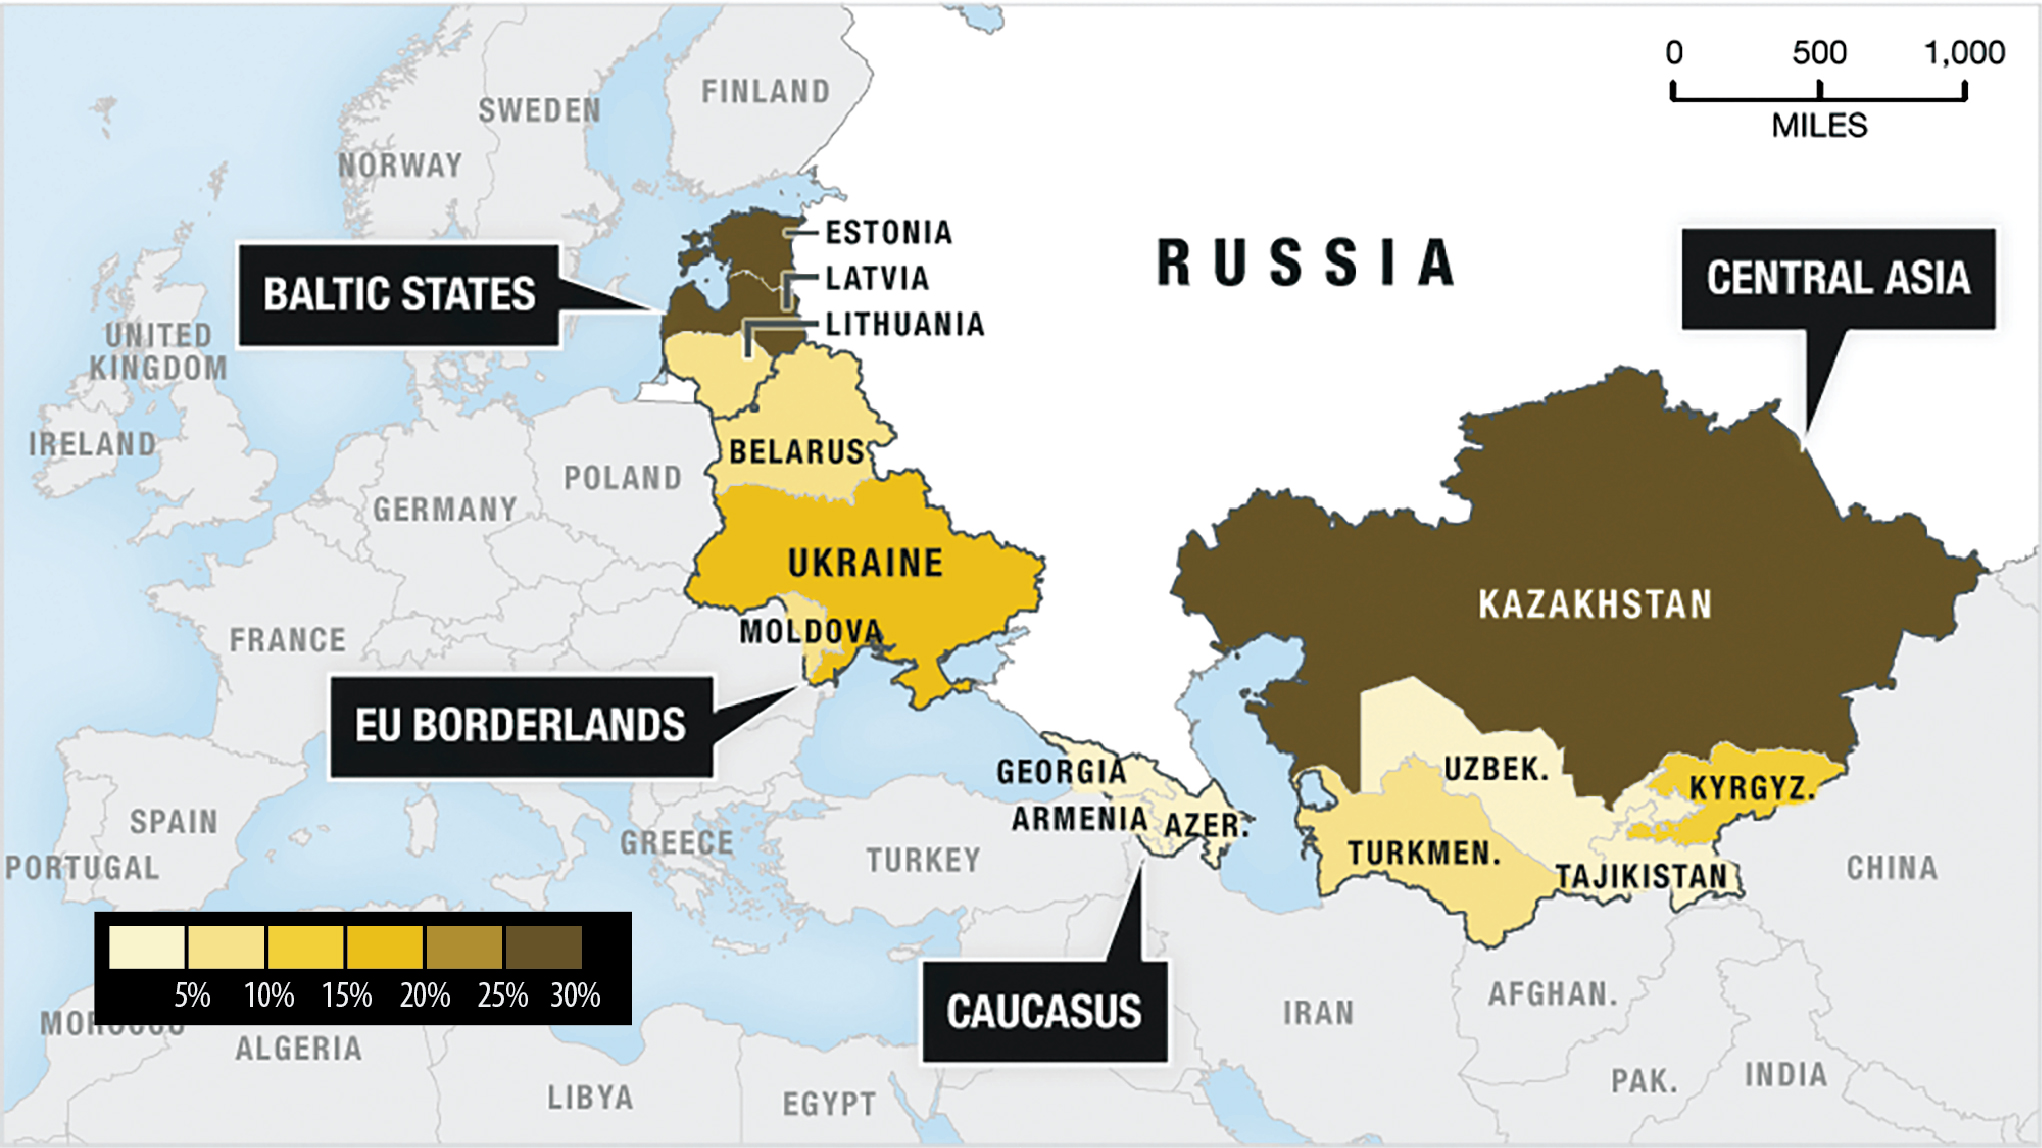 Suggest an advantageous connection for calls from Kazakhstan to Russia